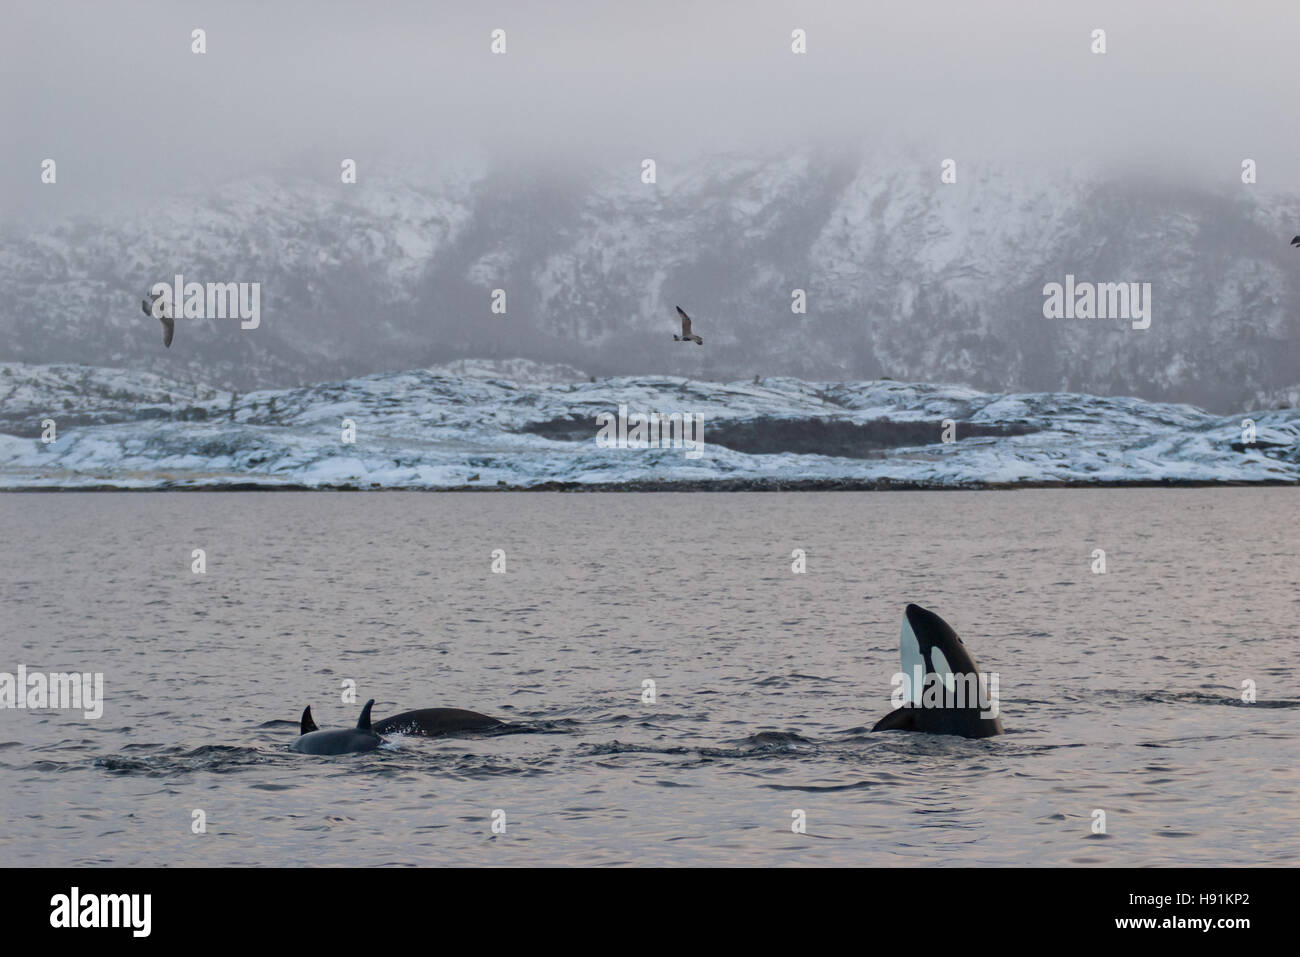 Spy hopping orca (Killer whale) in Tysfjord, Norway during winter, with snow on the mountains - Stock Image